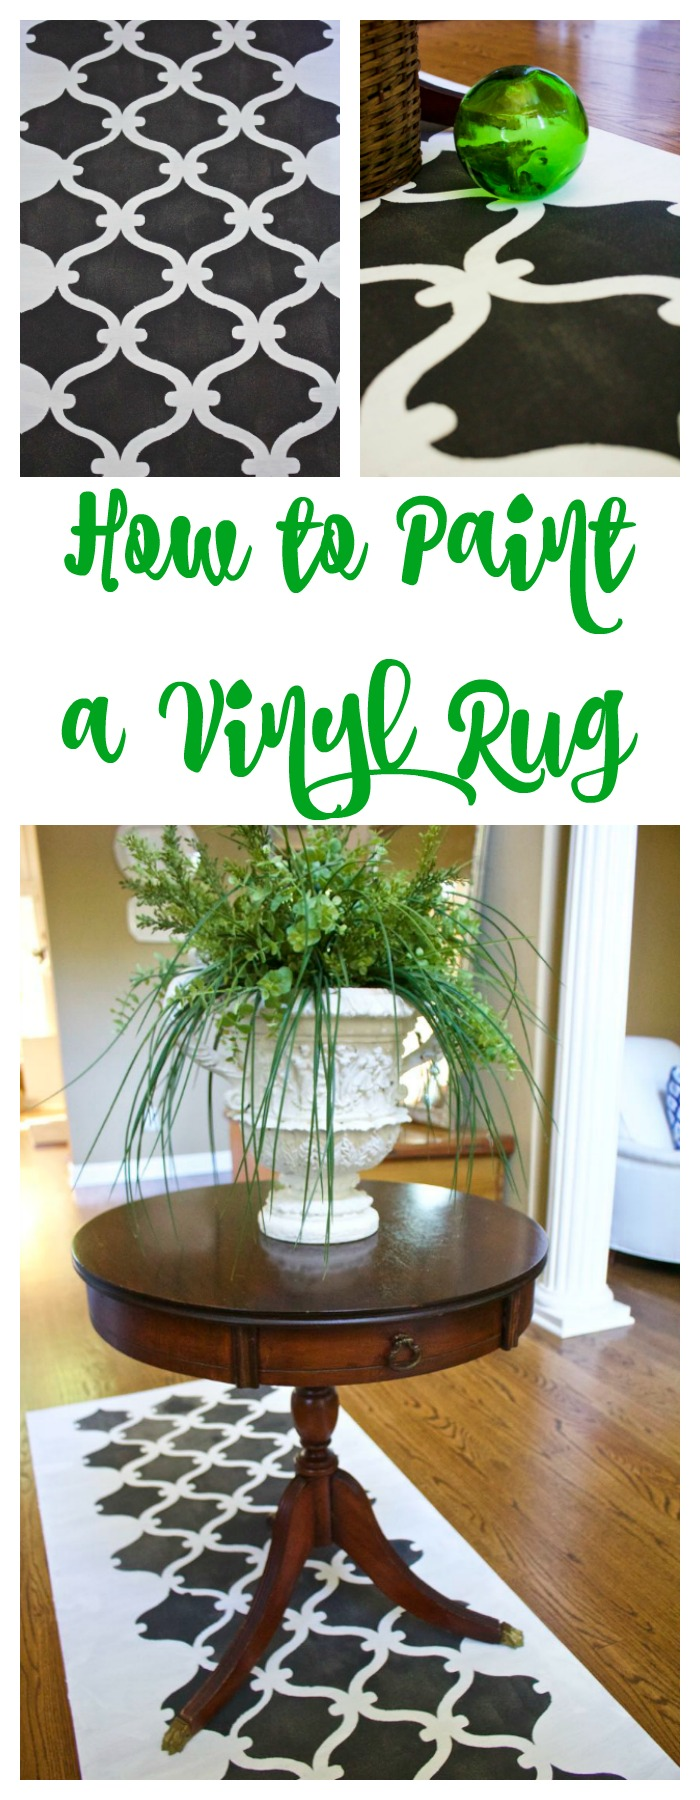 Painting a vinyl rug with stencil. How to project.